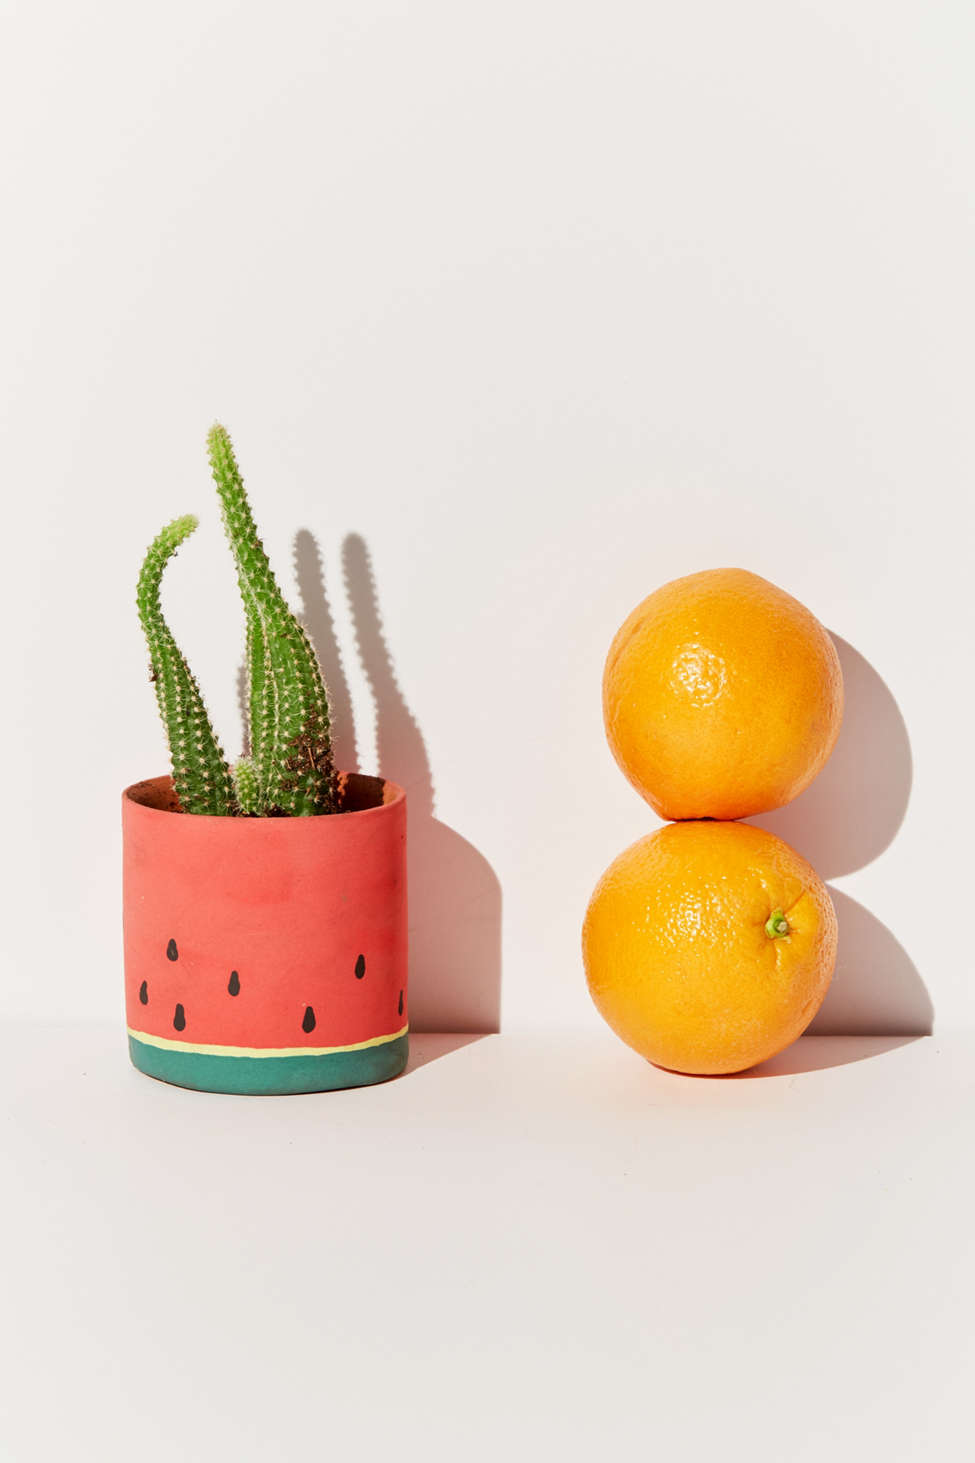 Slide View: 1: Jarmél By Jarmel For UO Handmade Melon Planter